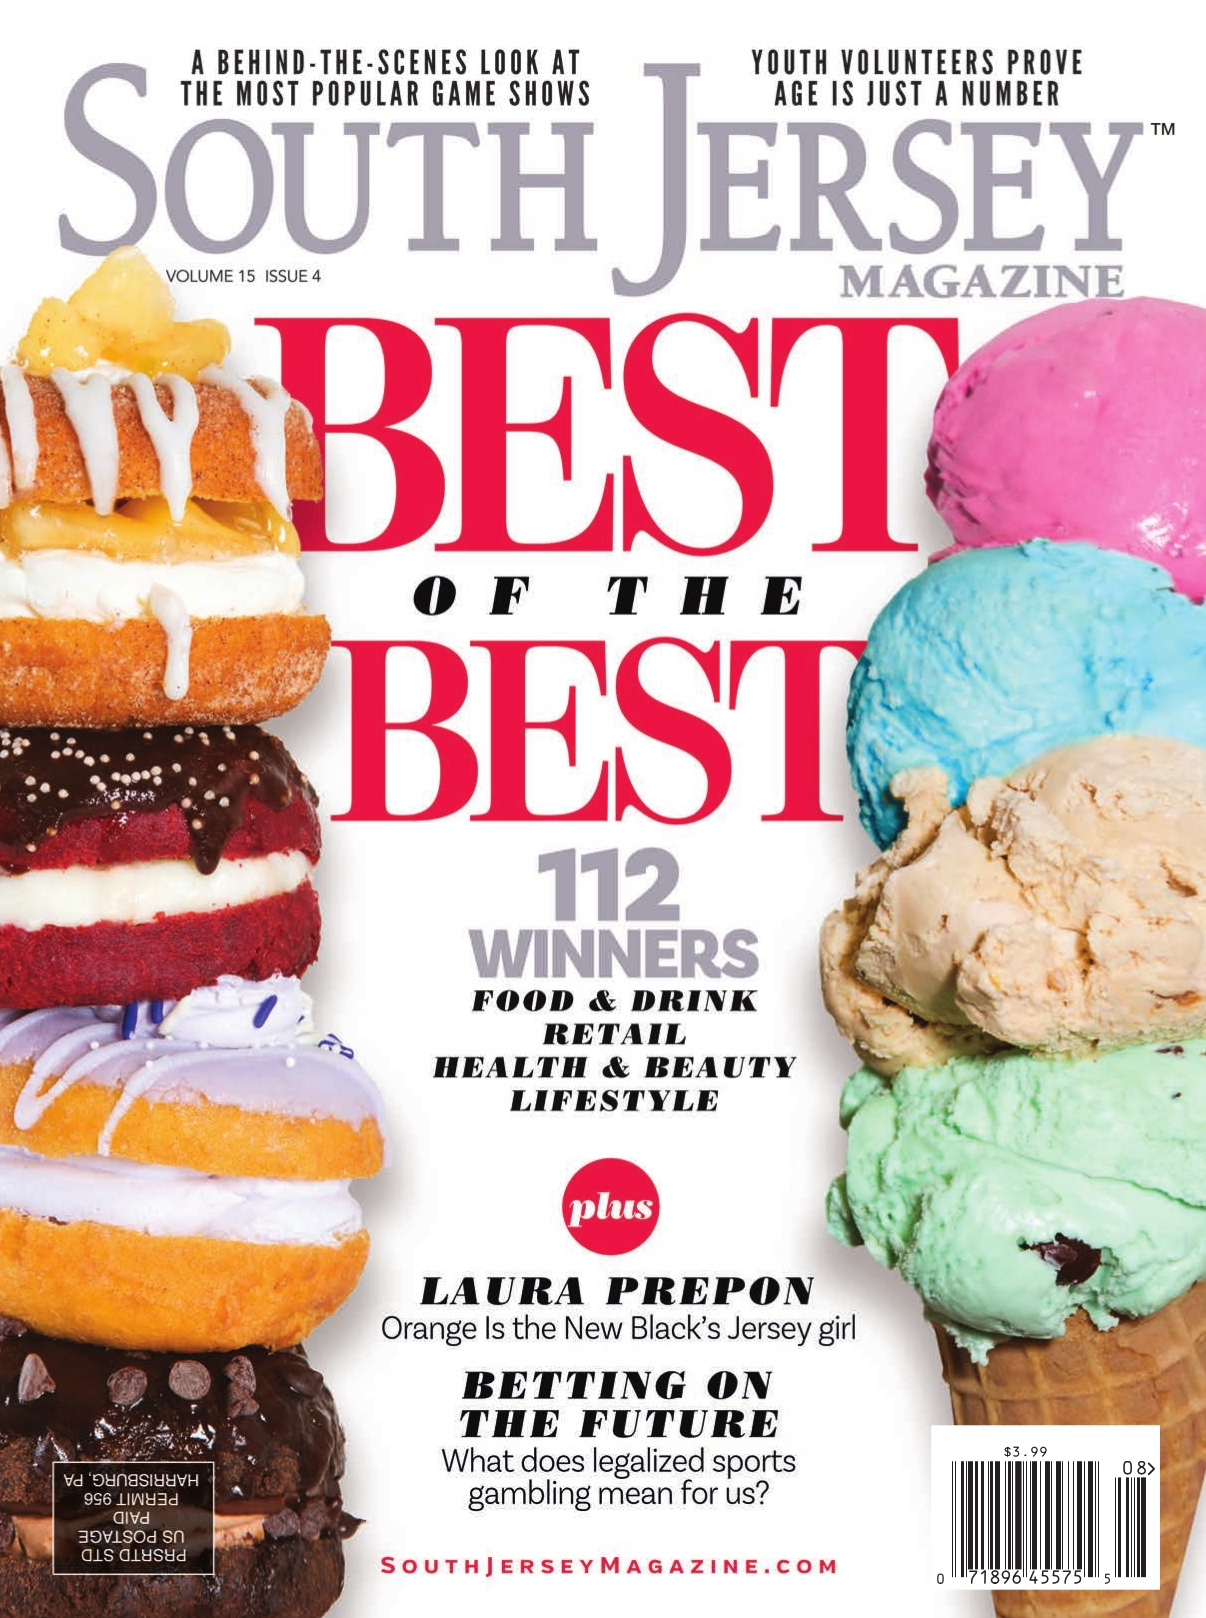 South Jersey Magazine July 2018 Issue